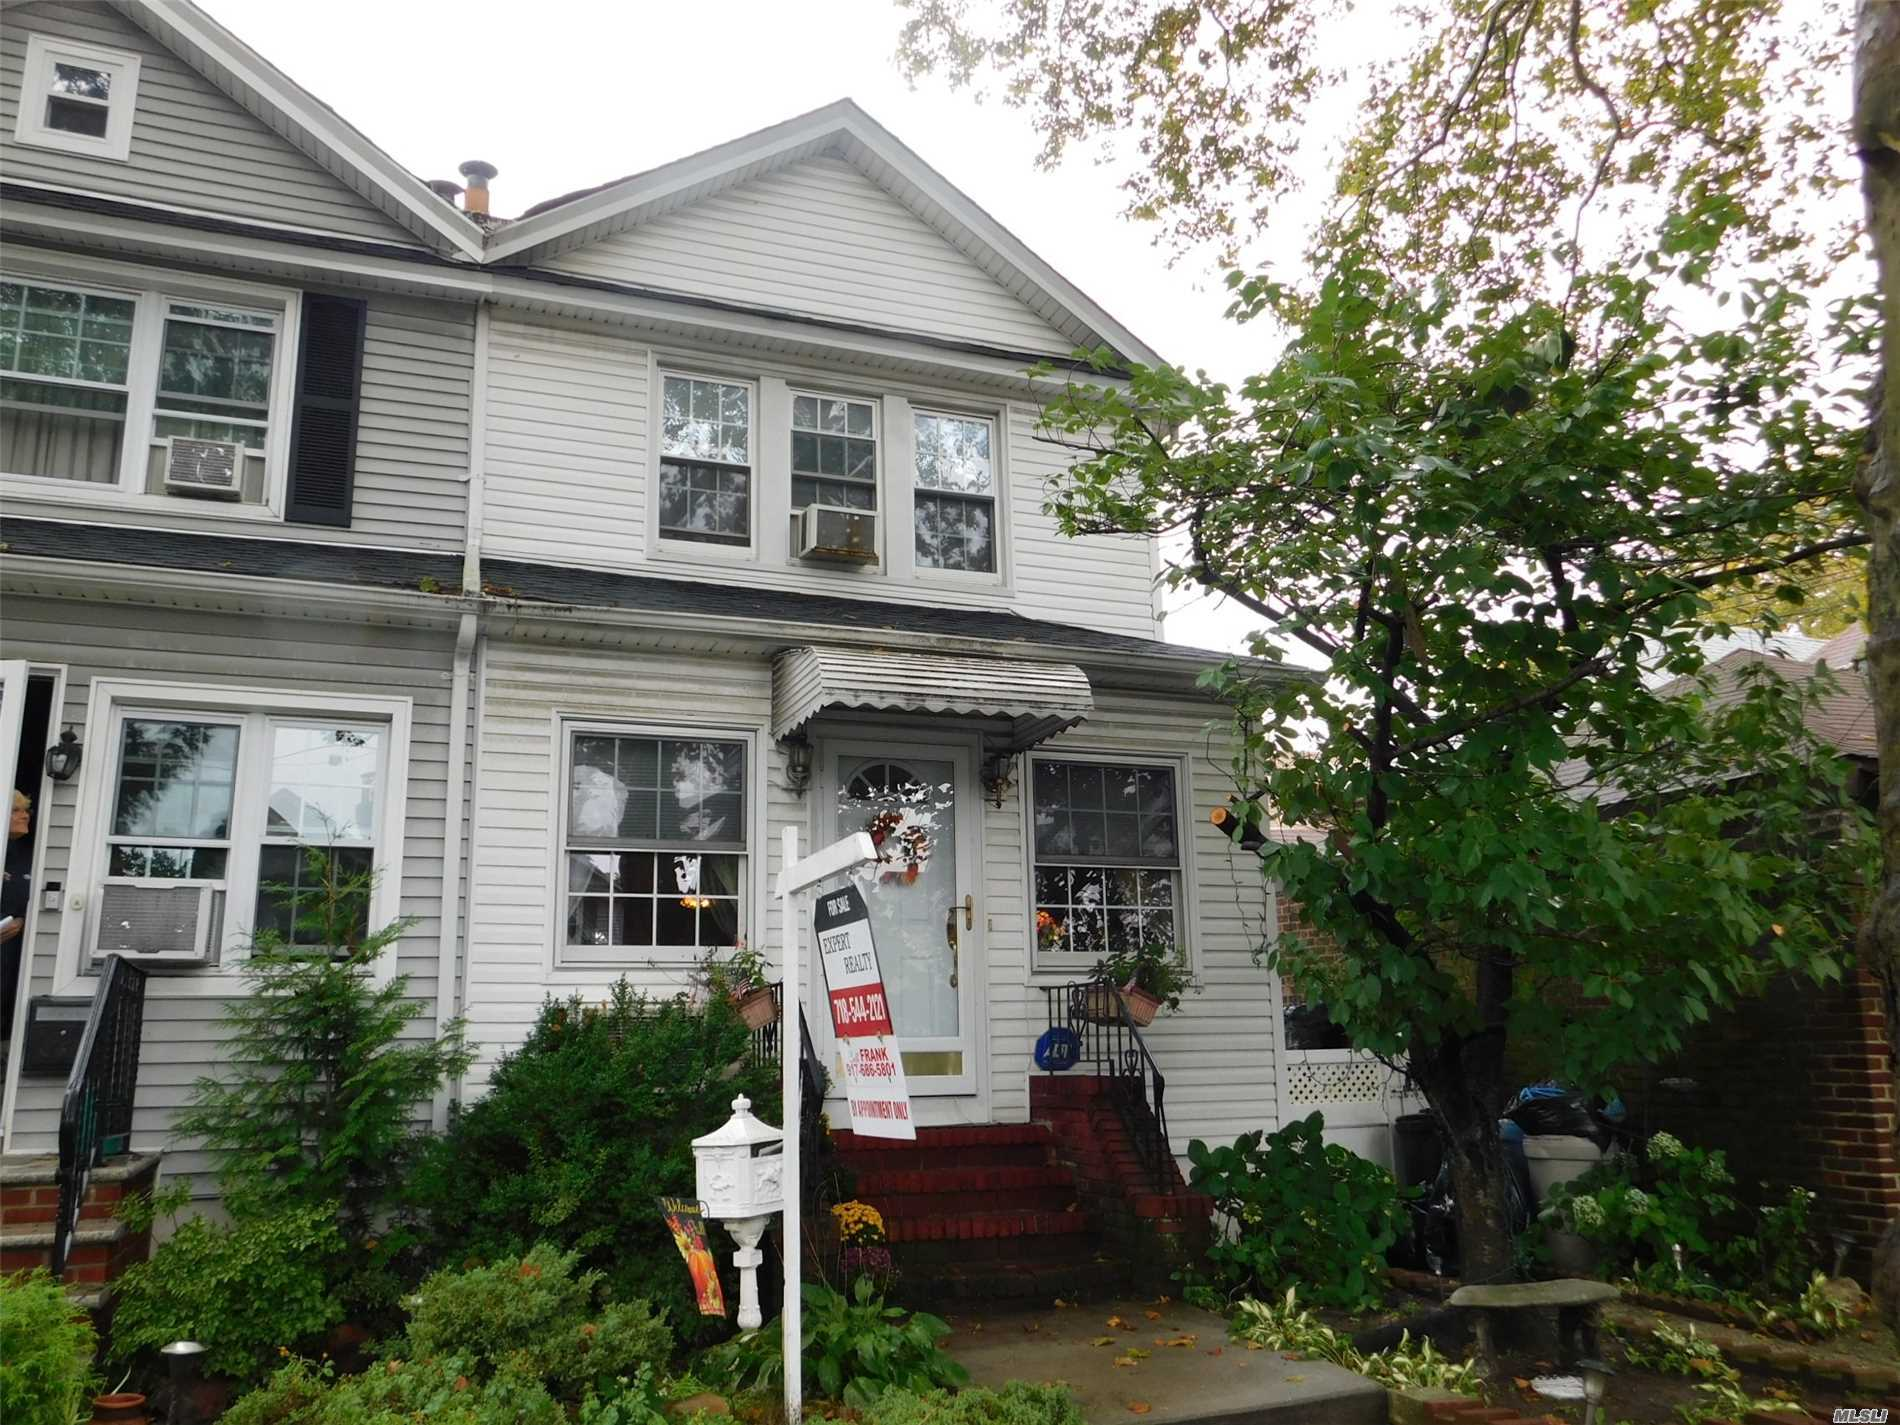 Lovely 3 Bedroom Colonial; With A A Long 16 X 40 Building Size, Off 71st/Continental Ave Nice Backyard , Finished Basement, Large Eat-In Kitchen Good Size Bedrooms . P.S.144